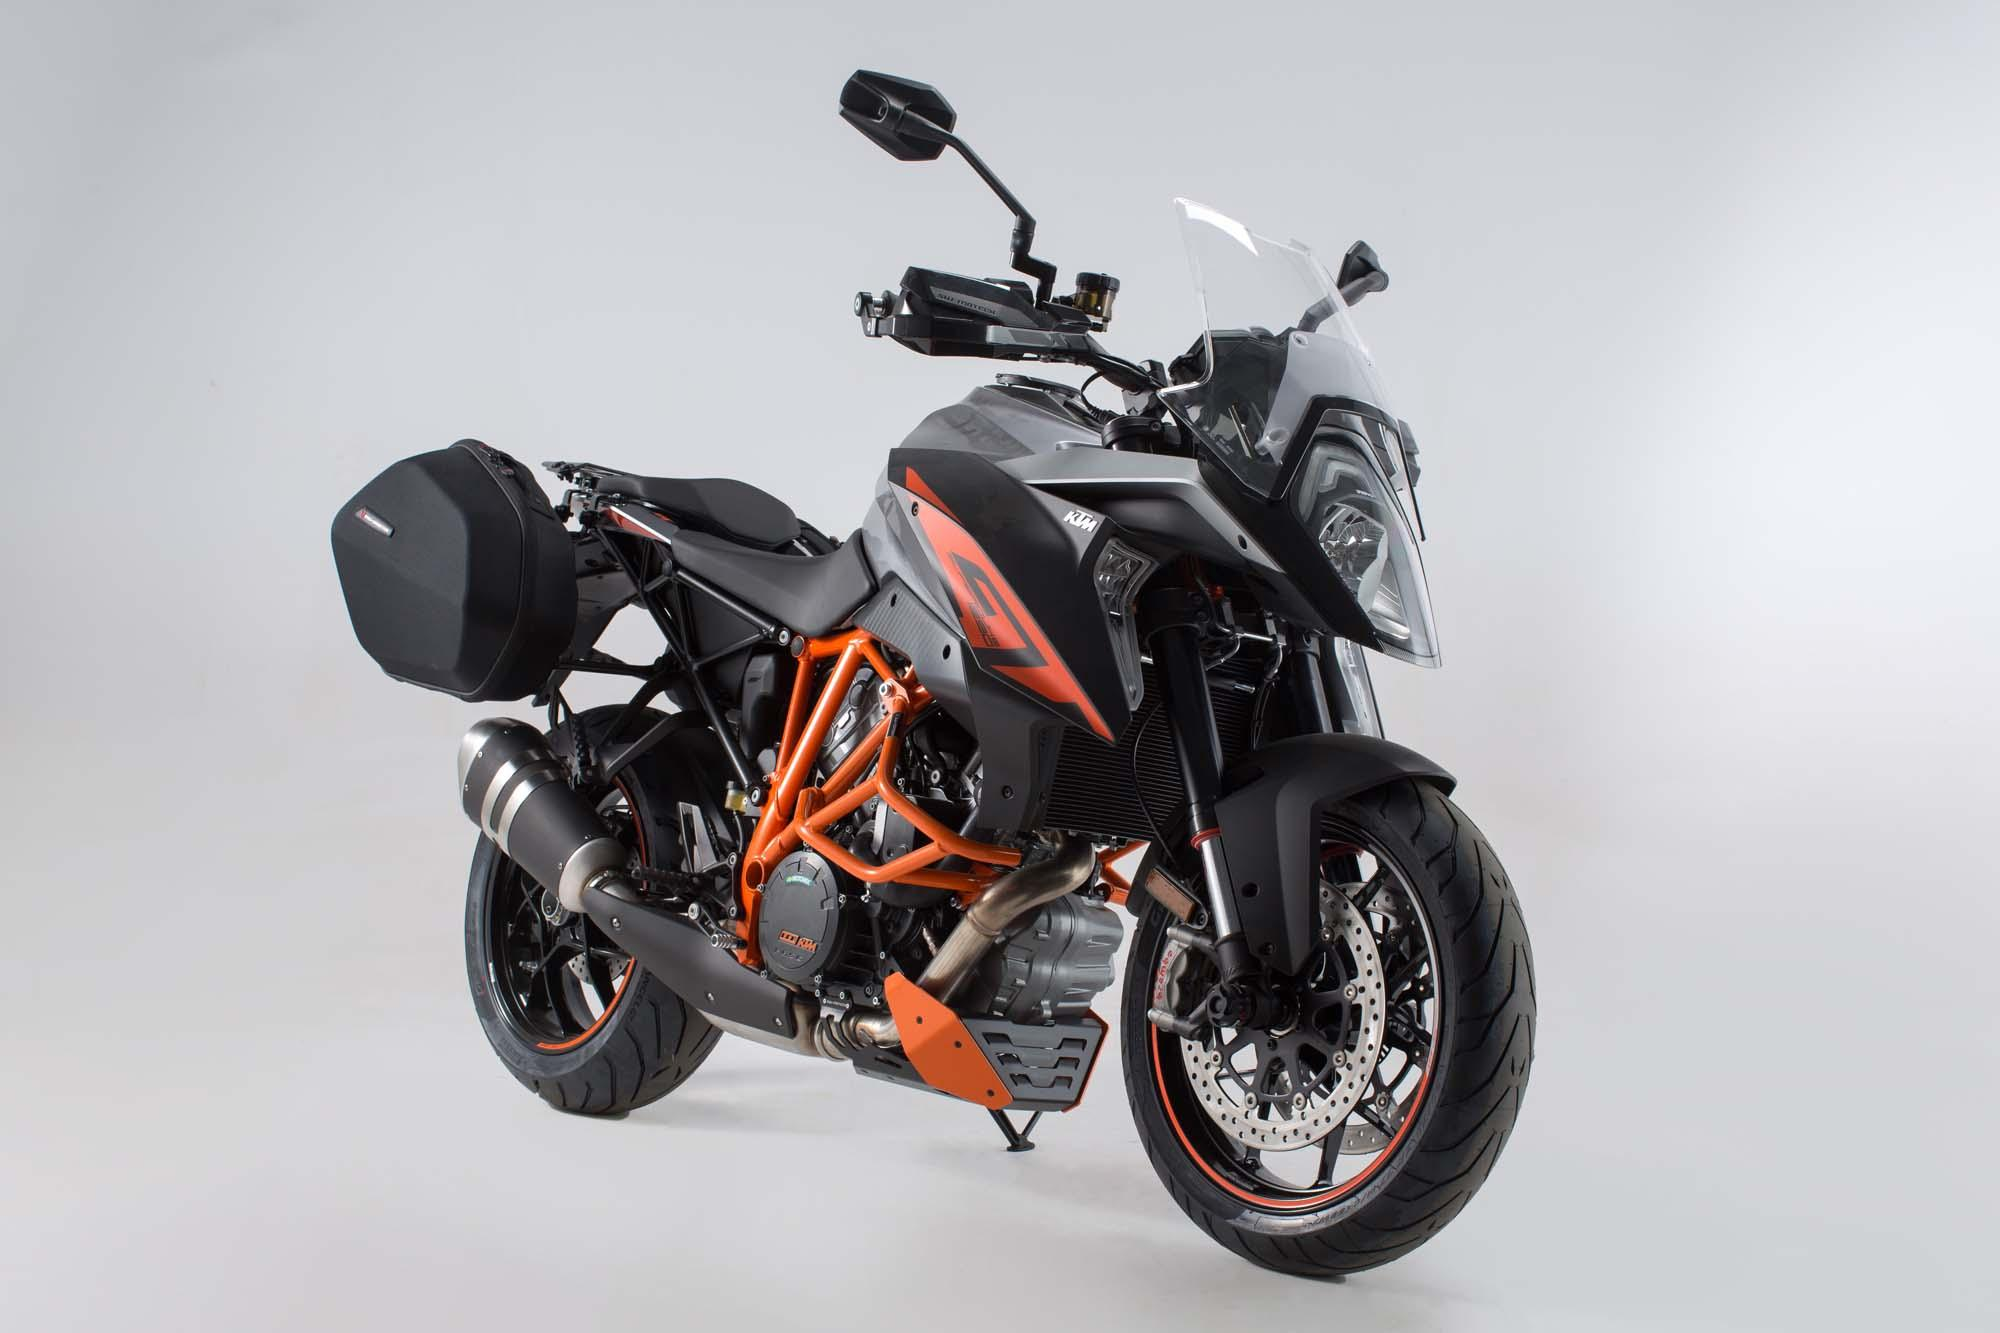 neues sw motech zubeh r f r die ktm 1290 super duke gt. Black Bedroom Furniture Sets. Home Design Ideas